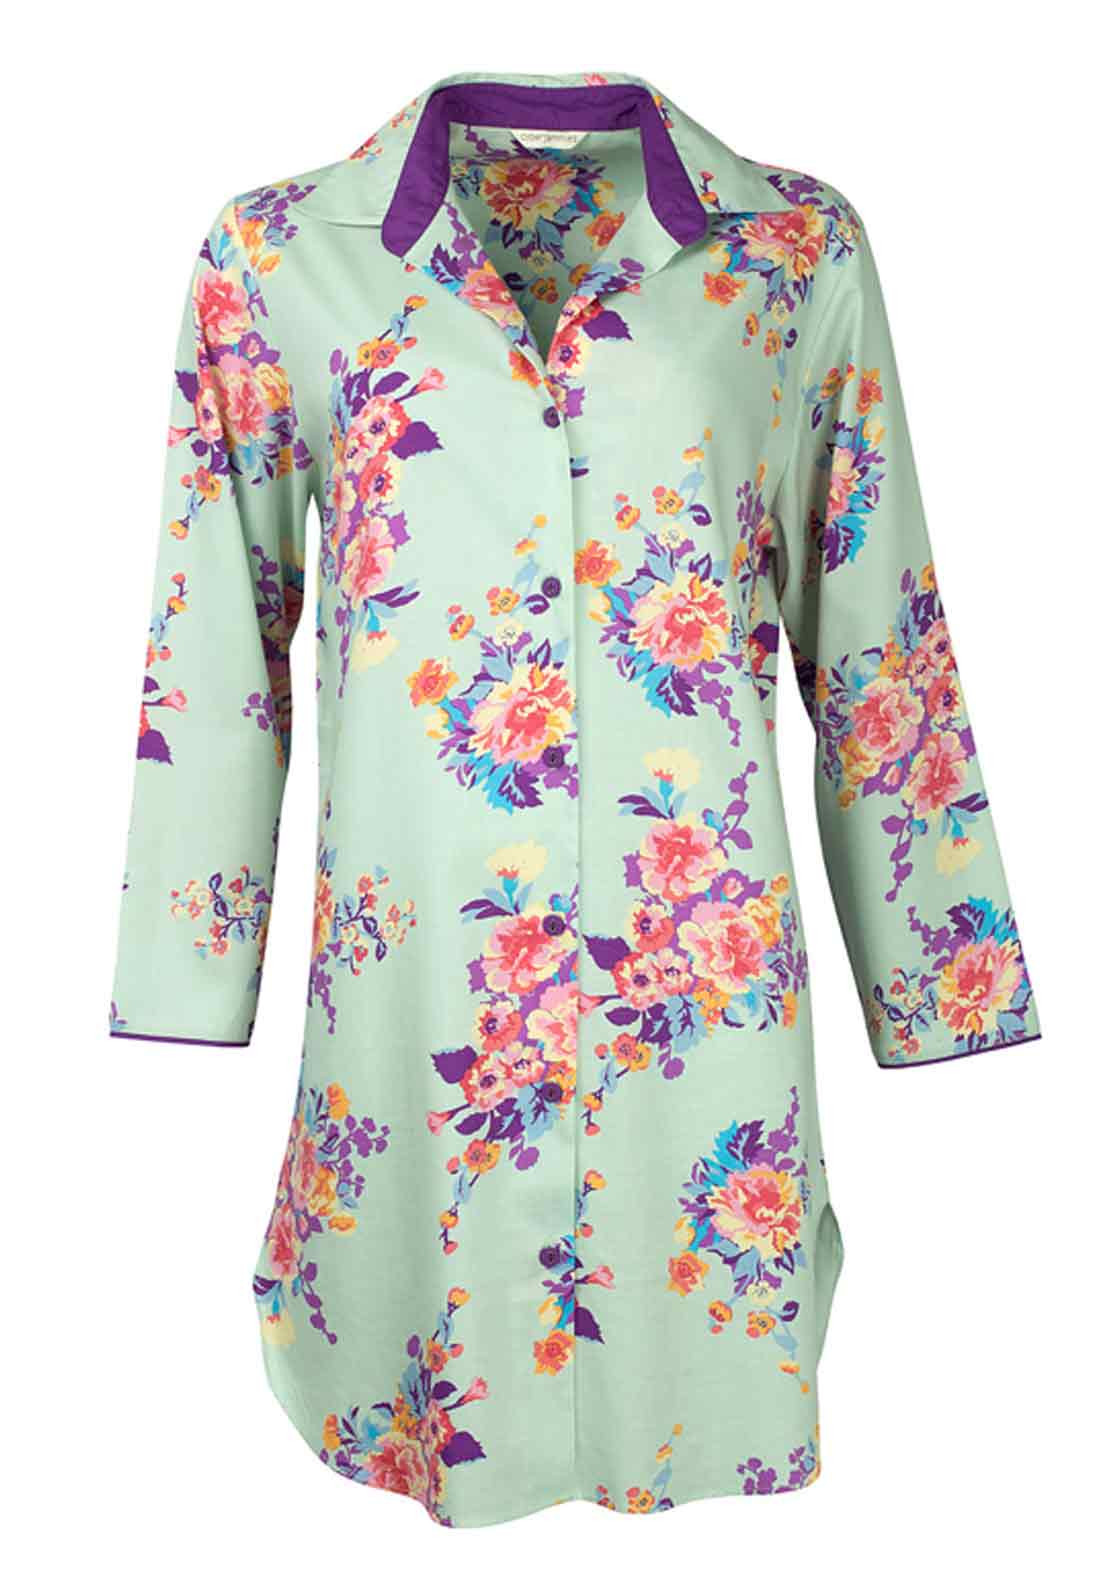 Cyberjammies Waterlily at Dusk Floral Print Nightshirt, Aqua Floral